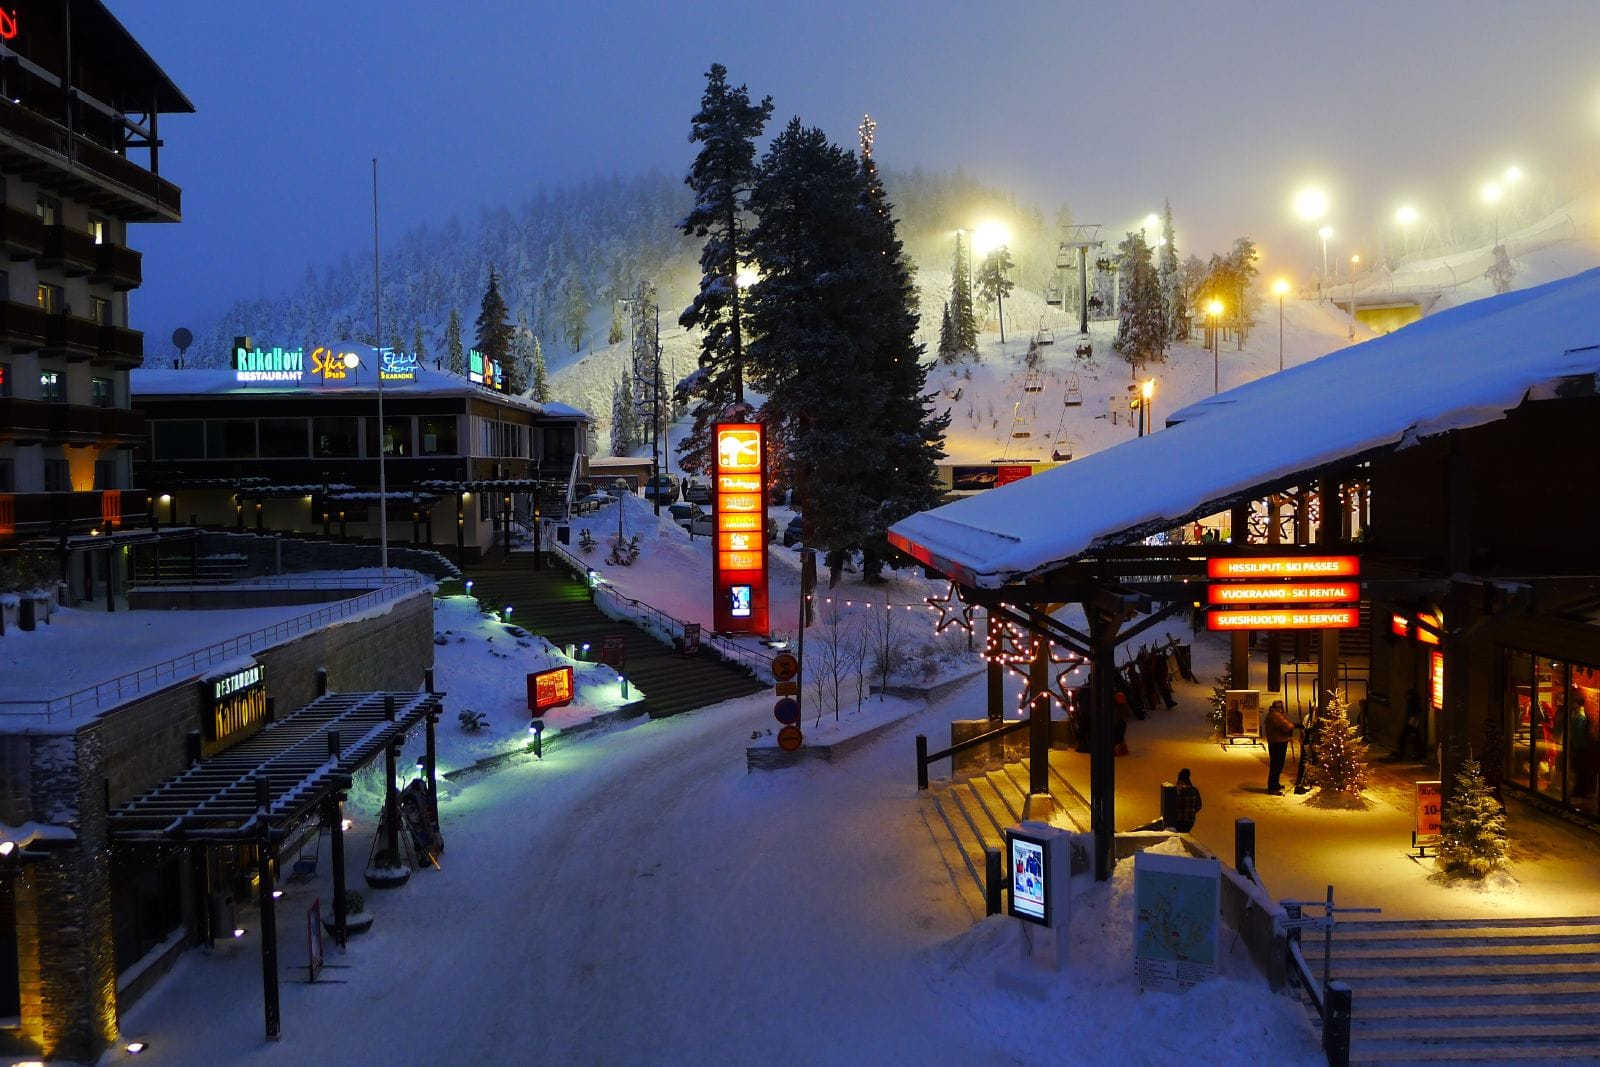 All this in the lively, car-free winter sports resort of Ruka. There are a number of good après-ski bars, night clubs and culinary restaurants with Finnish and international specialties.